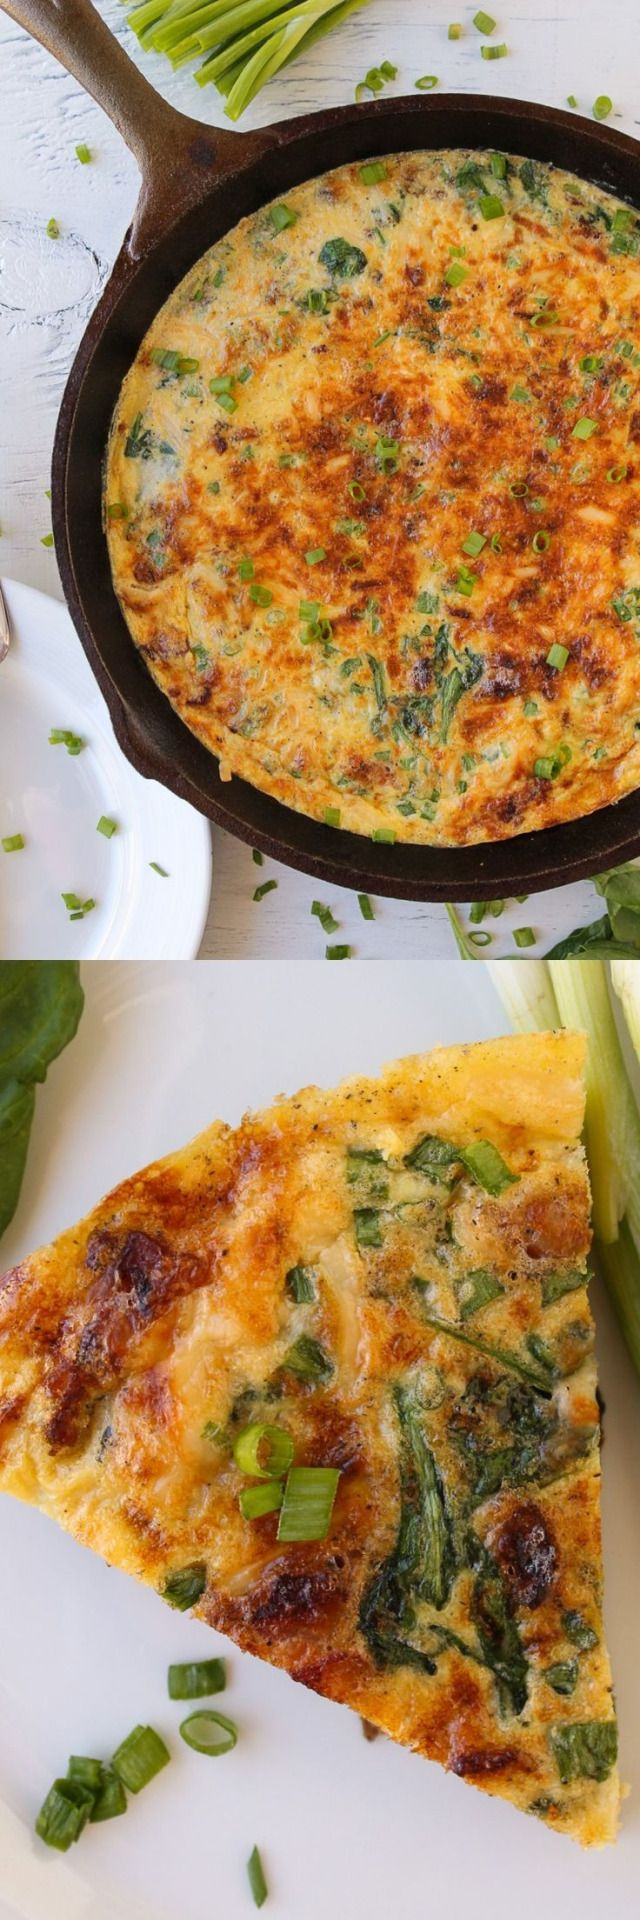 Bacon, Gouda, & Spinach Frittata _ Cooked in a Cast Iron Skillet. I added a bunch of bacon & gouda cheese to mine because that's what sounded good to me!